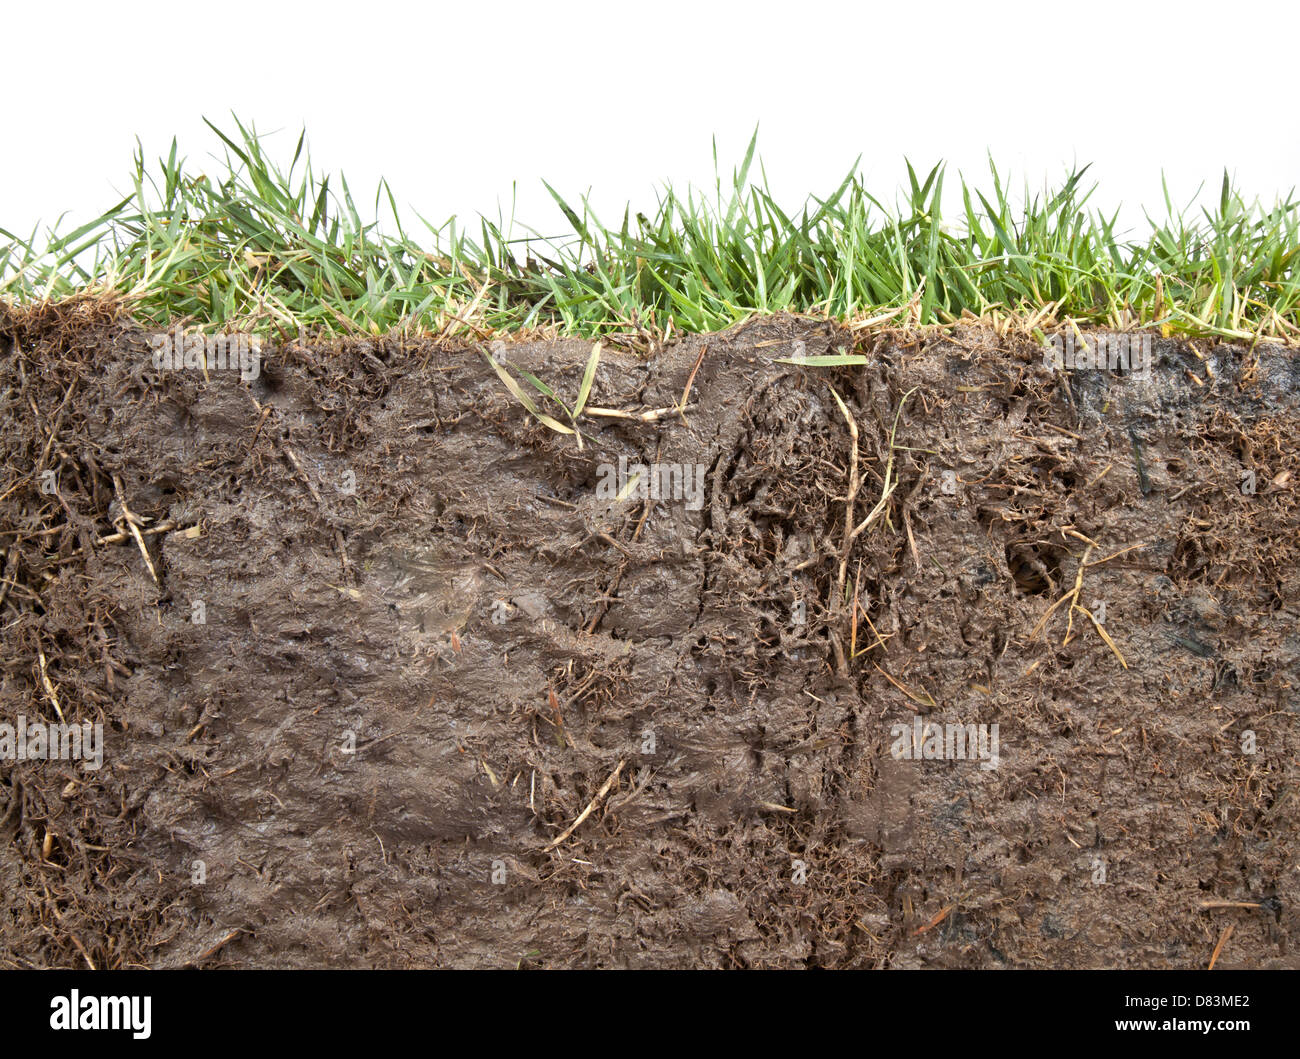 cross section of grass and soil against white background - Stock Image